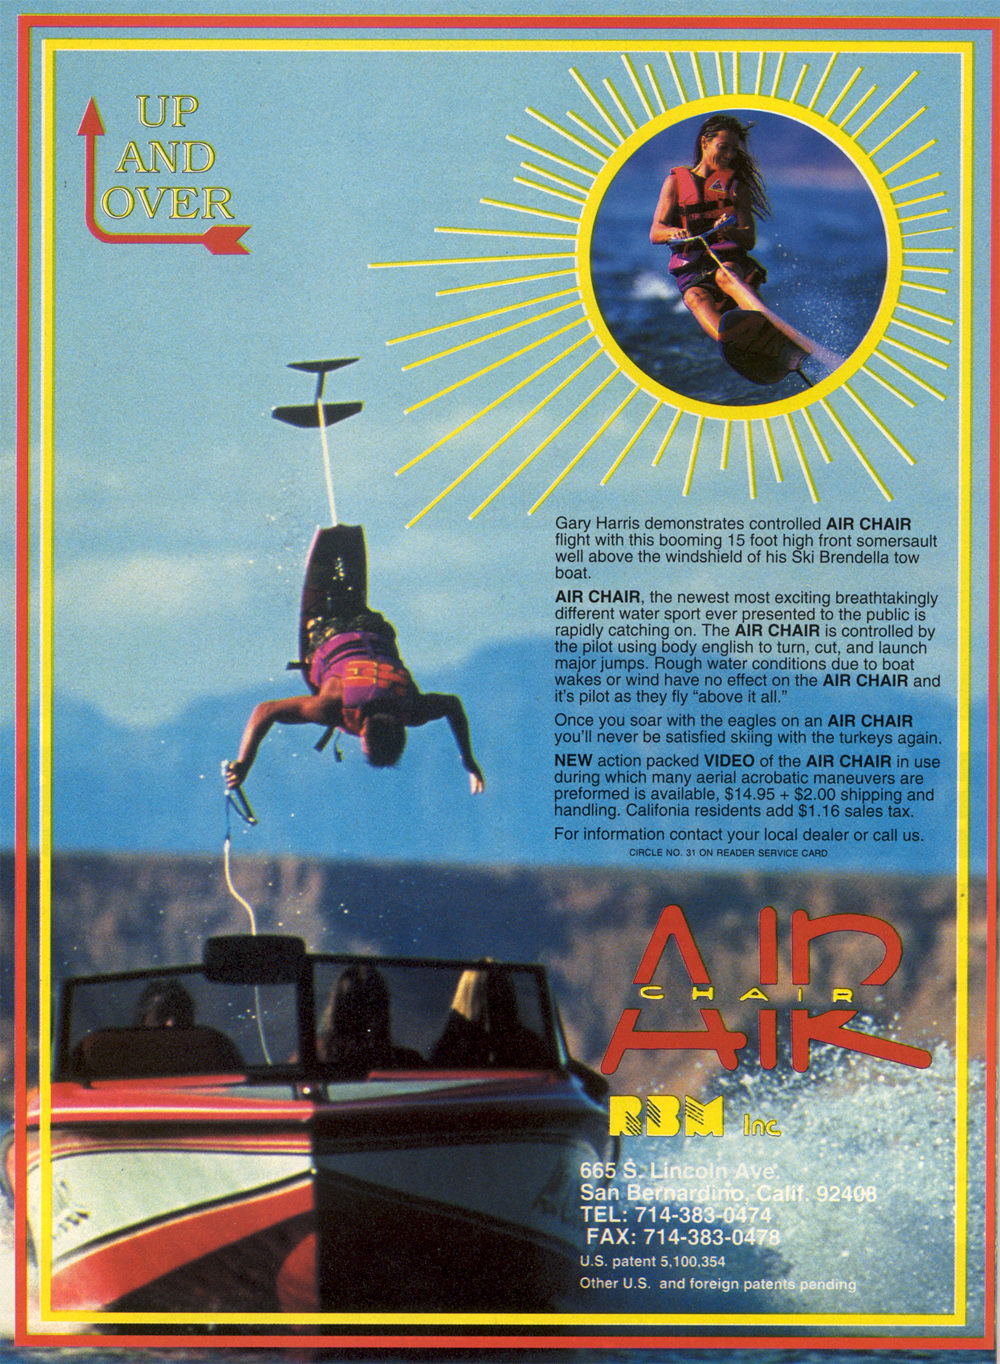 adventures-water-skiing-hydrofoiling-1992-air-chair-ad-gray-harris-front-flip